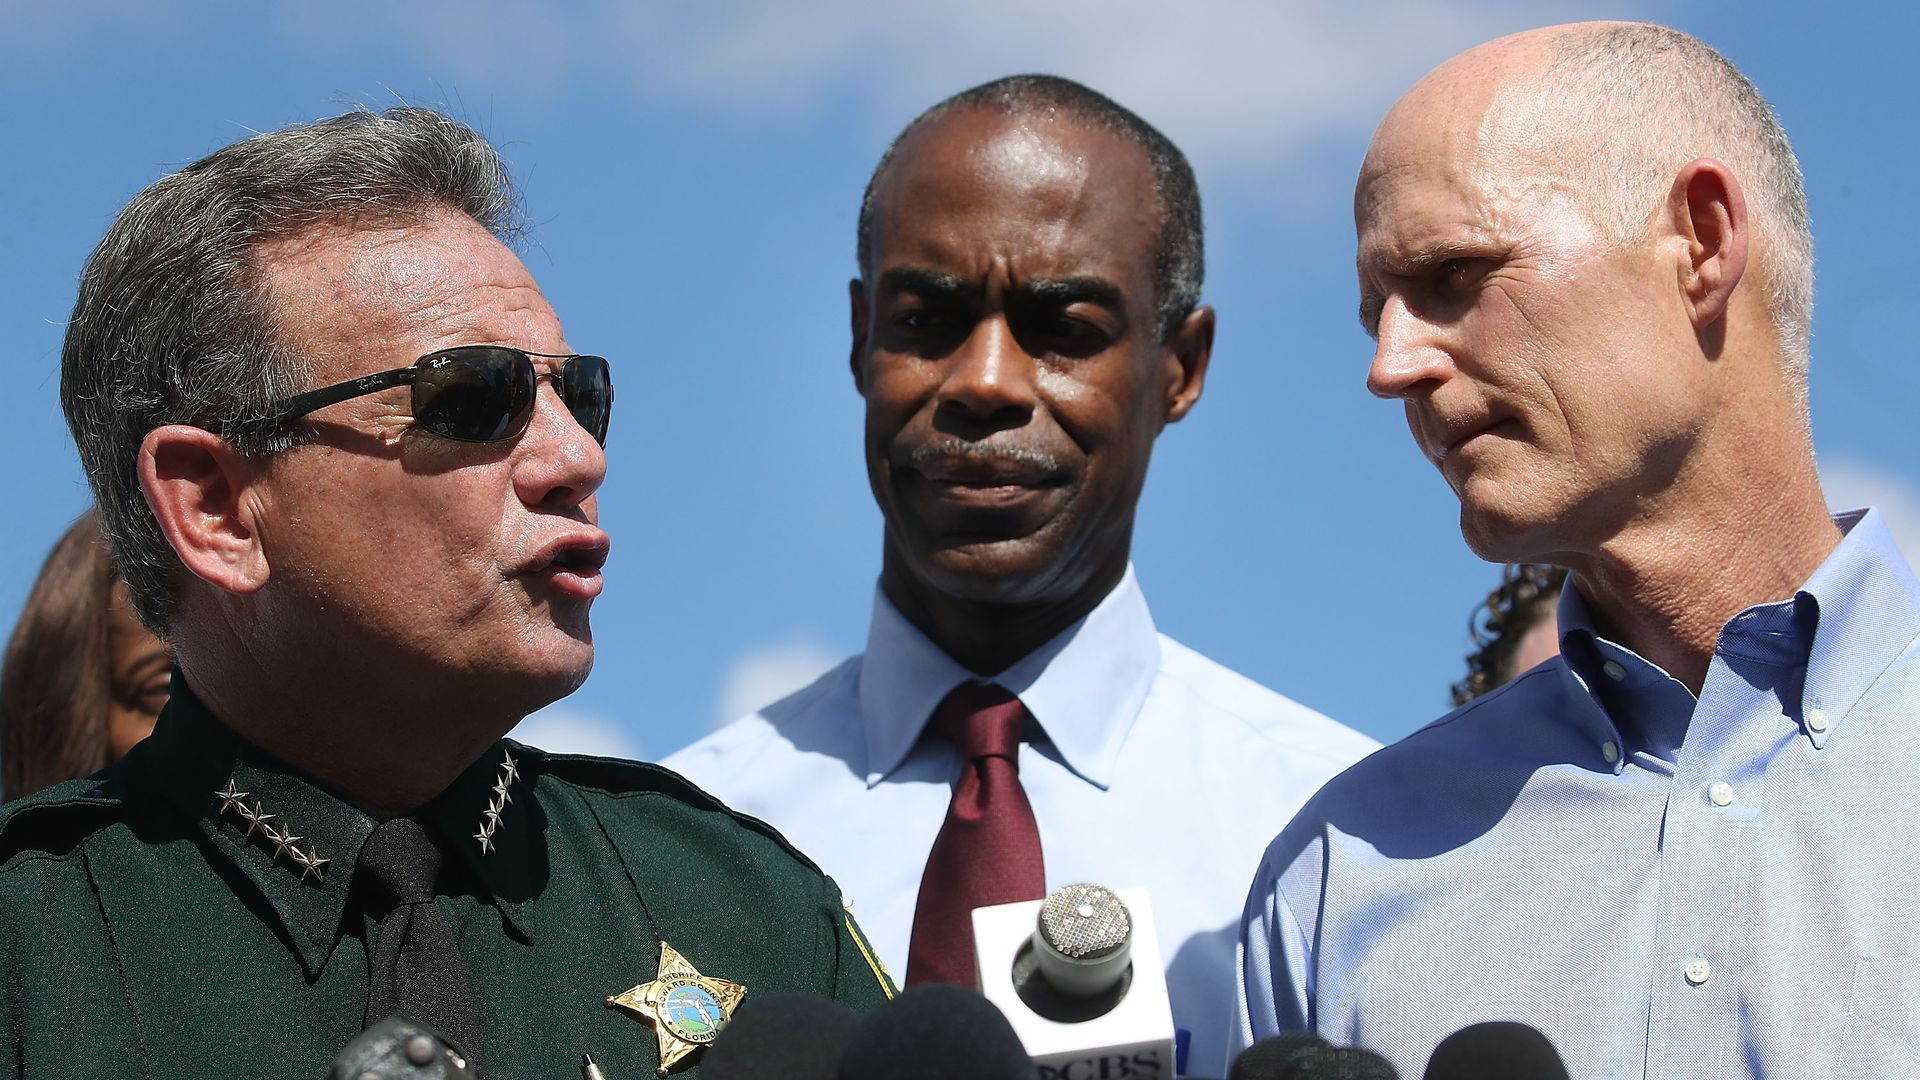 Florida Governor Rick Scott, Broward County Superintendent, Robert W. Runcie and Broward County Sheriff, Scott Israel.